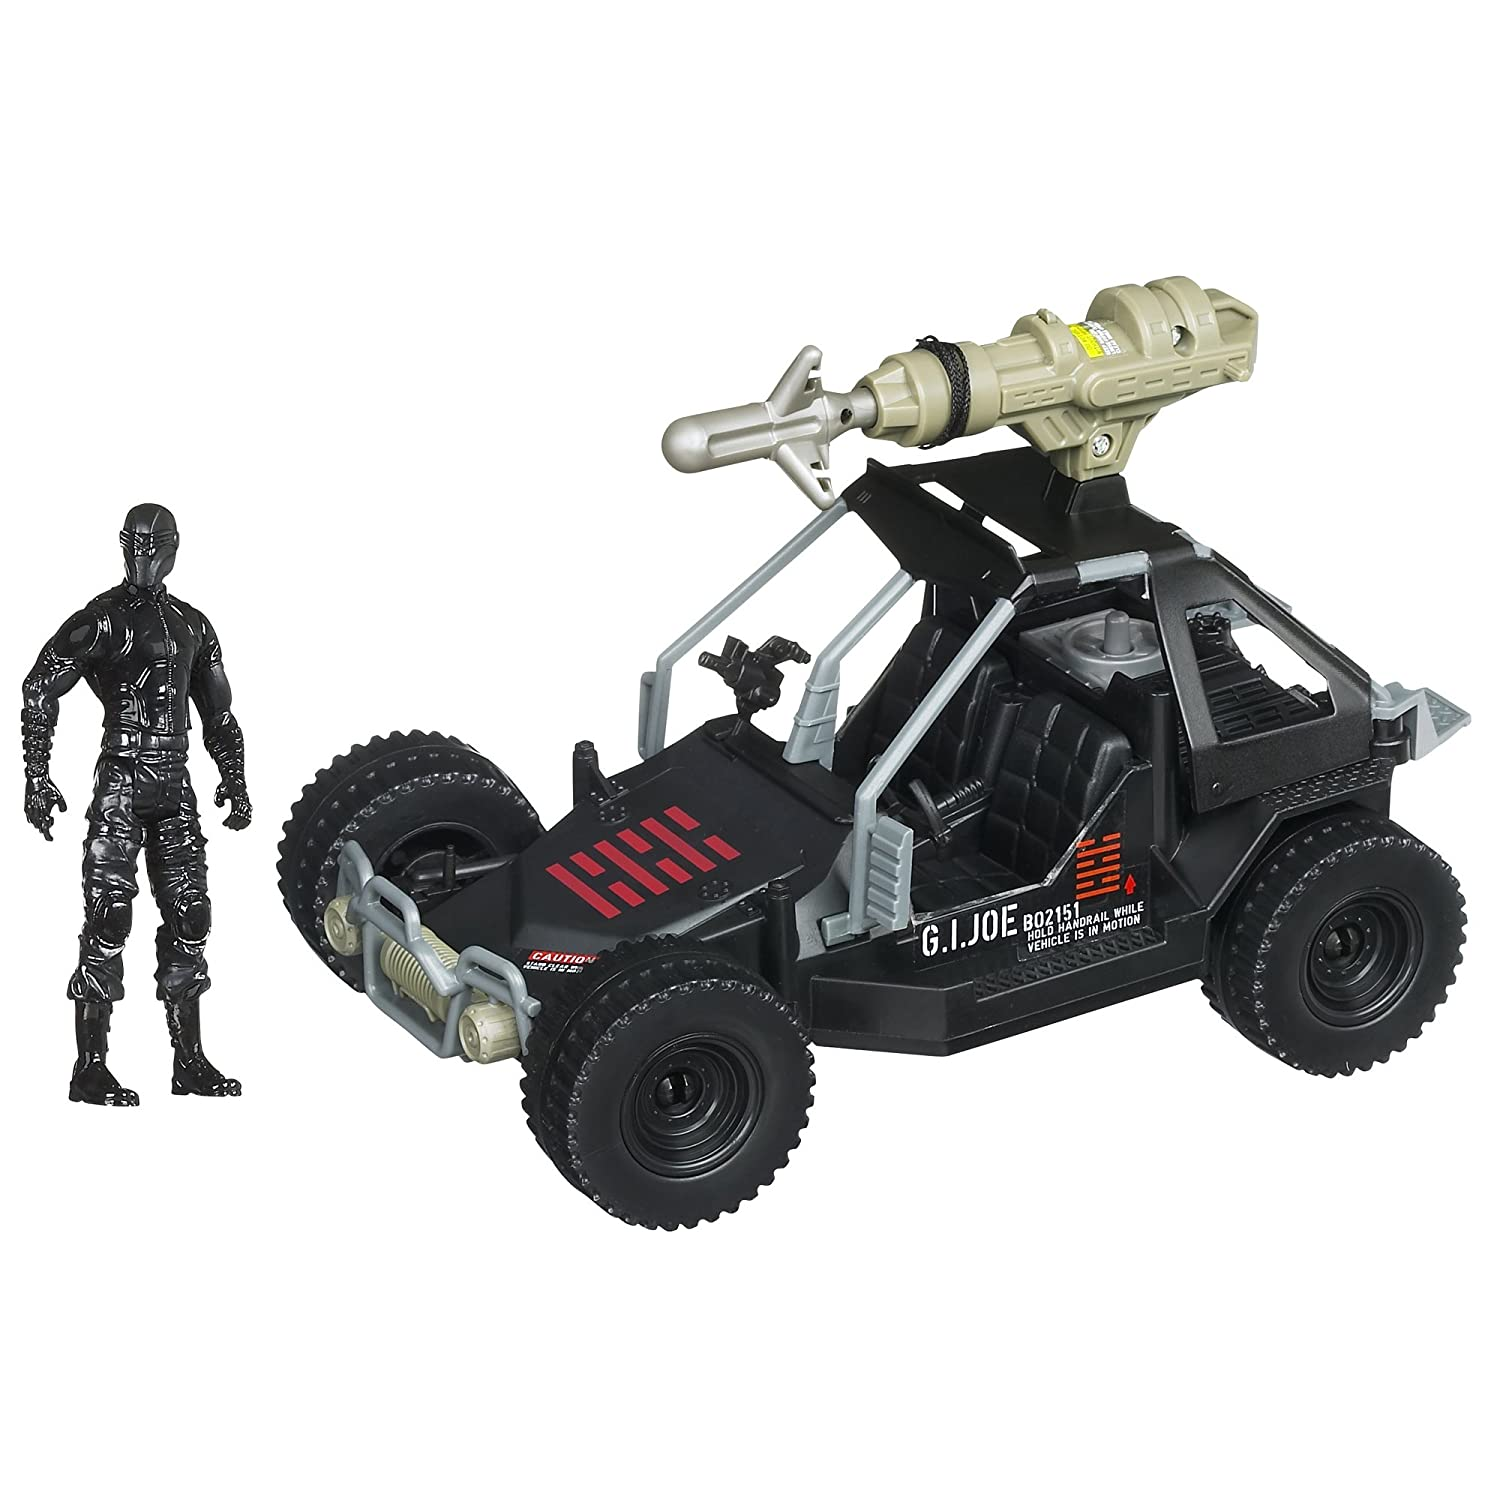 G.I. Joe Retaliation Ninja Commando 4x4 With Grapple Hook ...